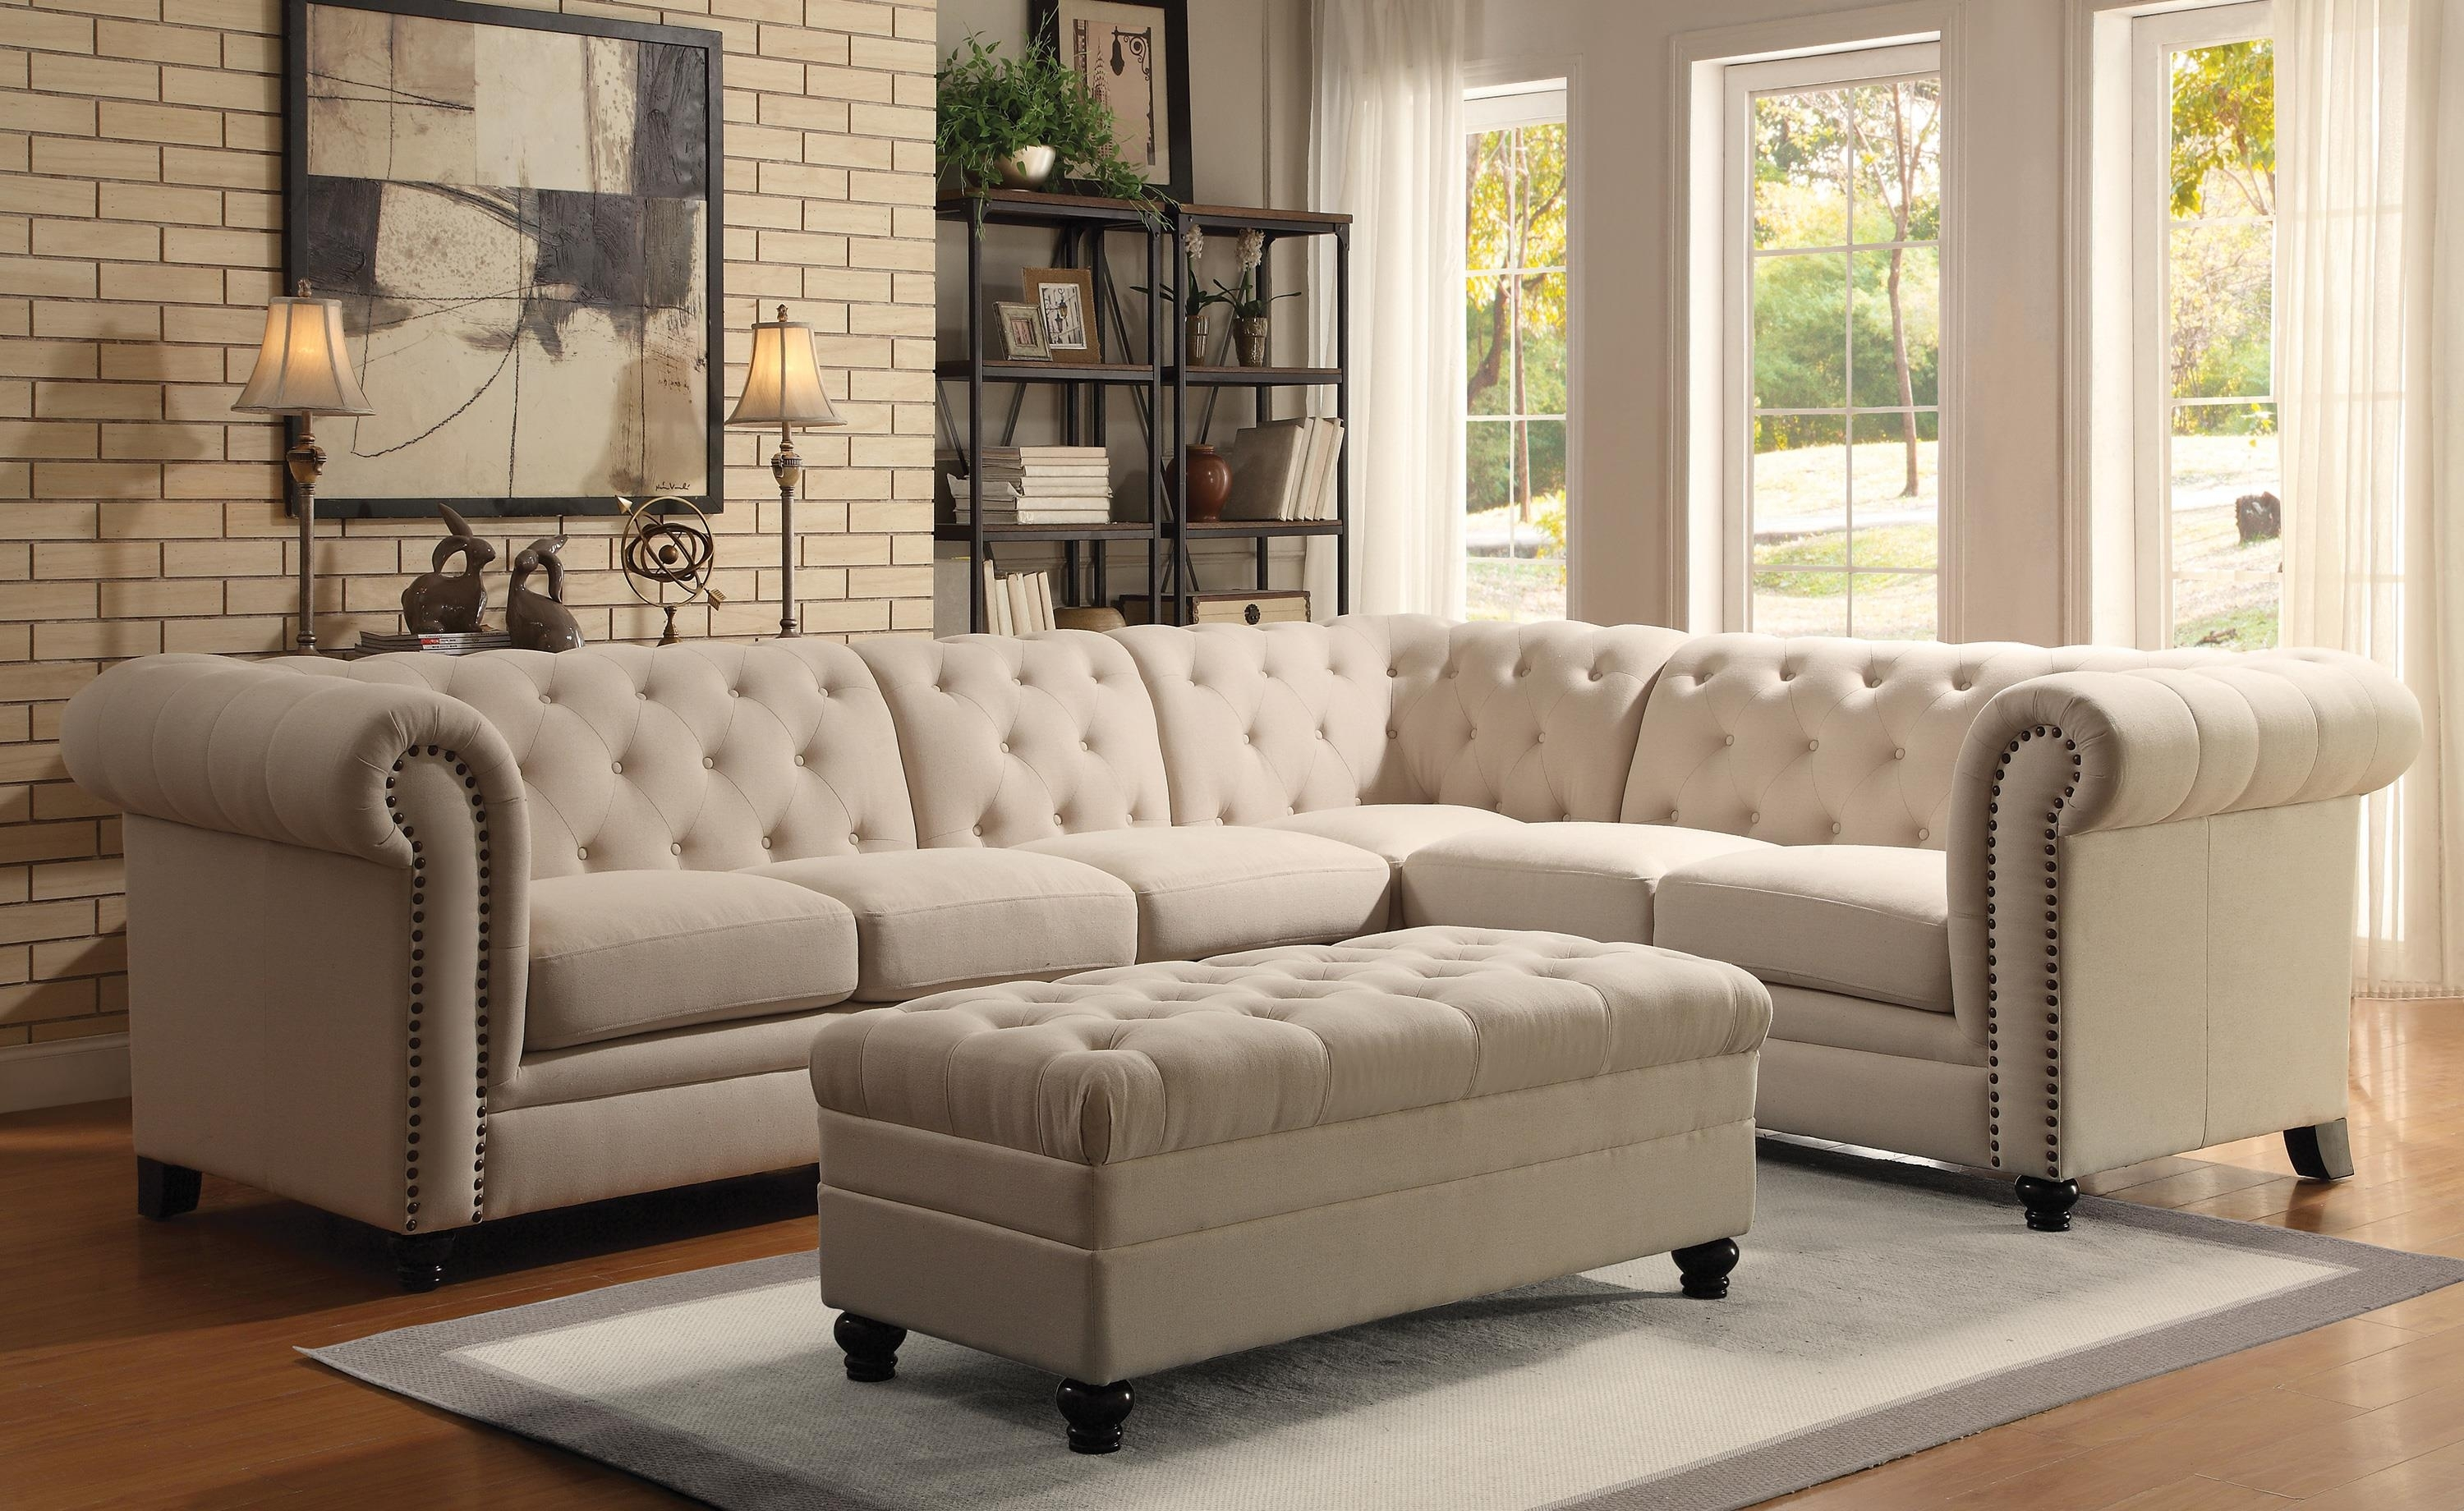 Furniture : Ethan Allen Richmond Sofa Sofa Kijiji Oakville Tufted Throughout Oakville Sectional Sofas (View 3 of 10)